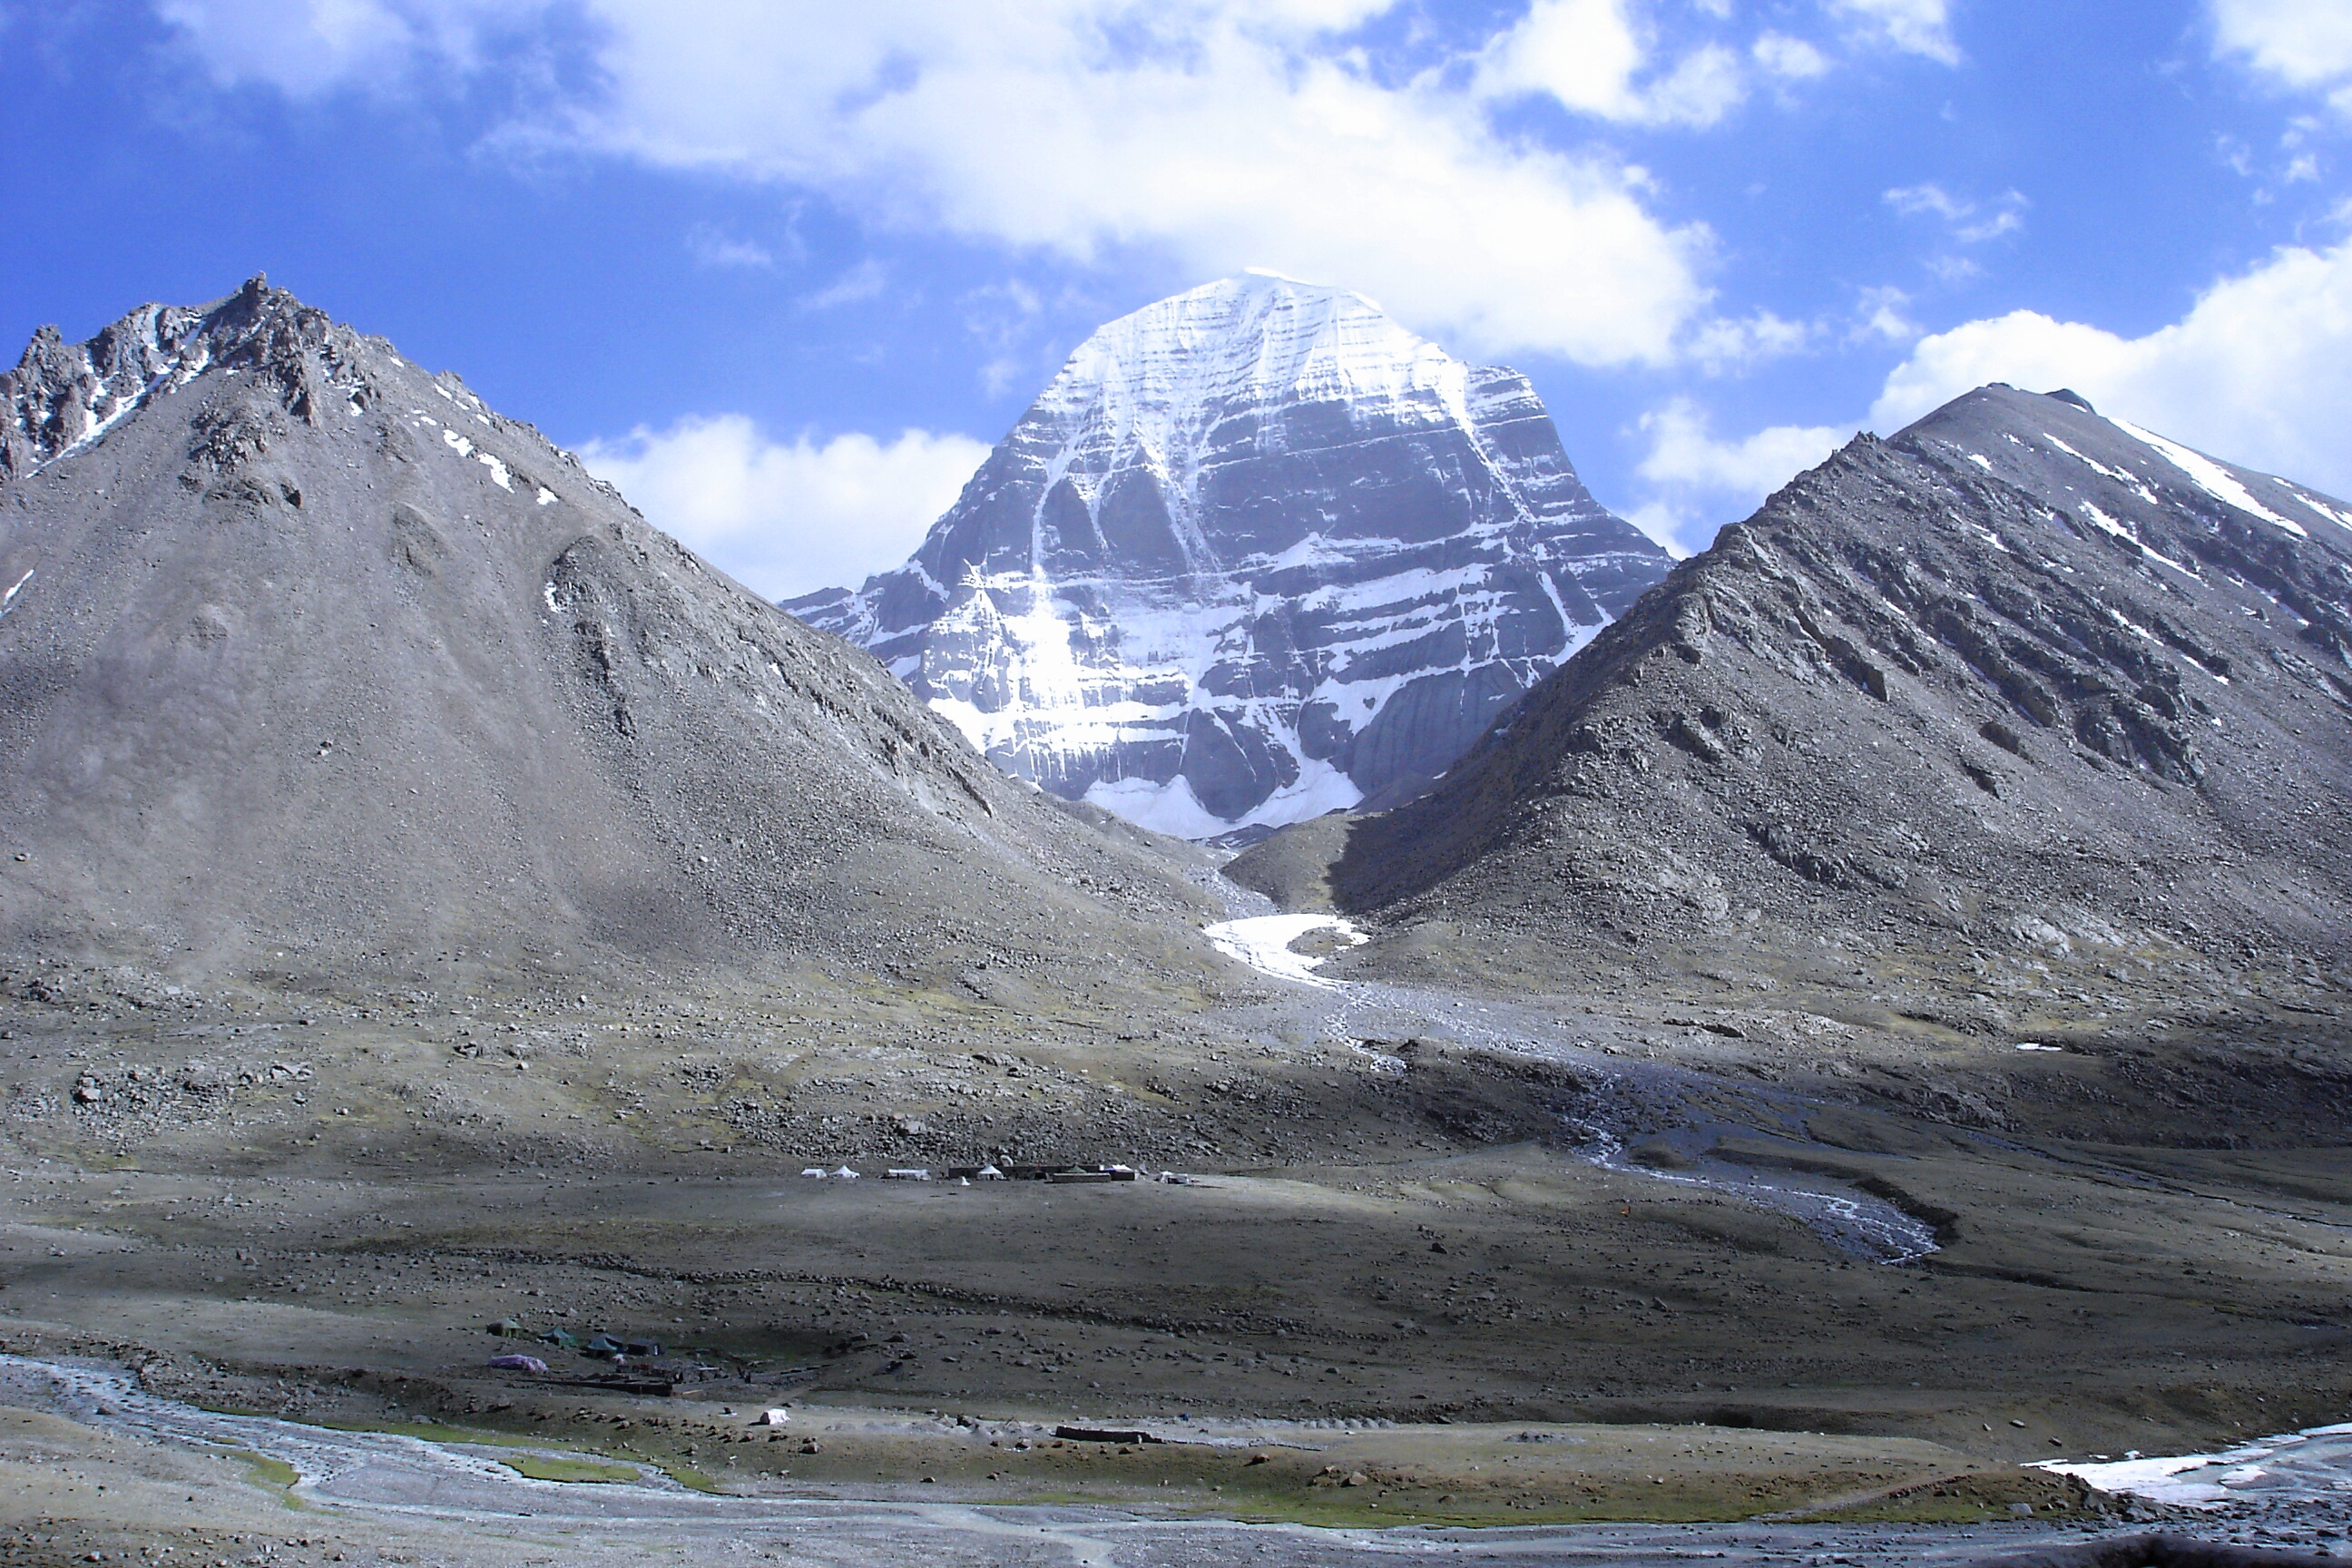 Mount Kailash is sacred for Hindus, Buddhists and Jains. Source: Ondřej Žváček/wikipedia